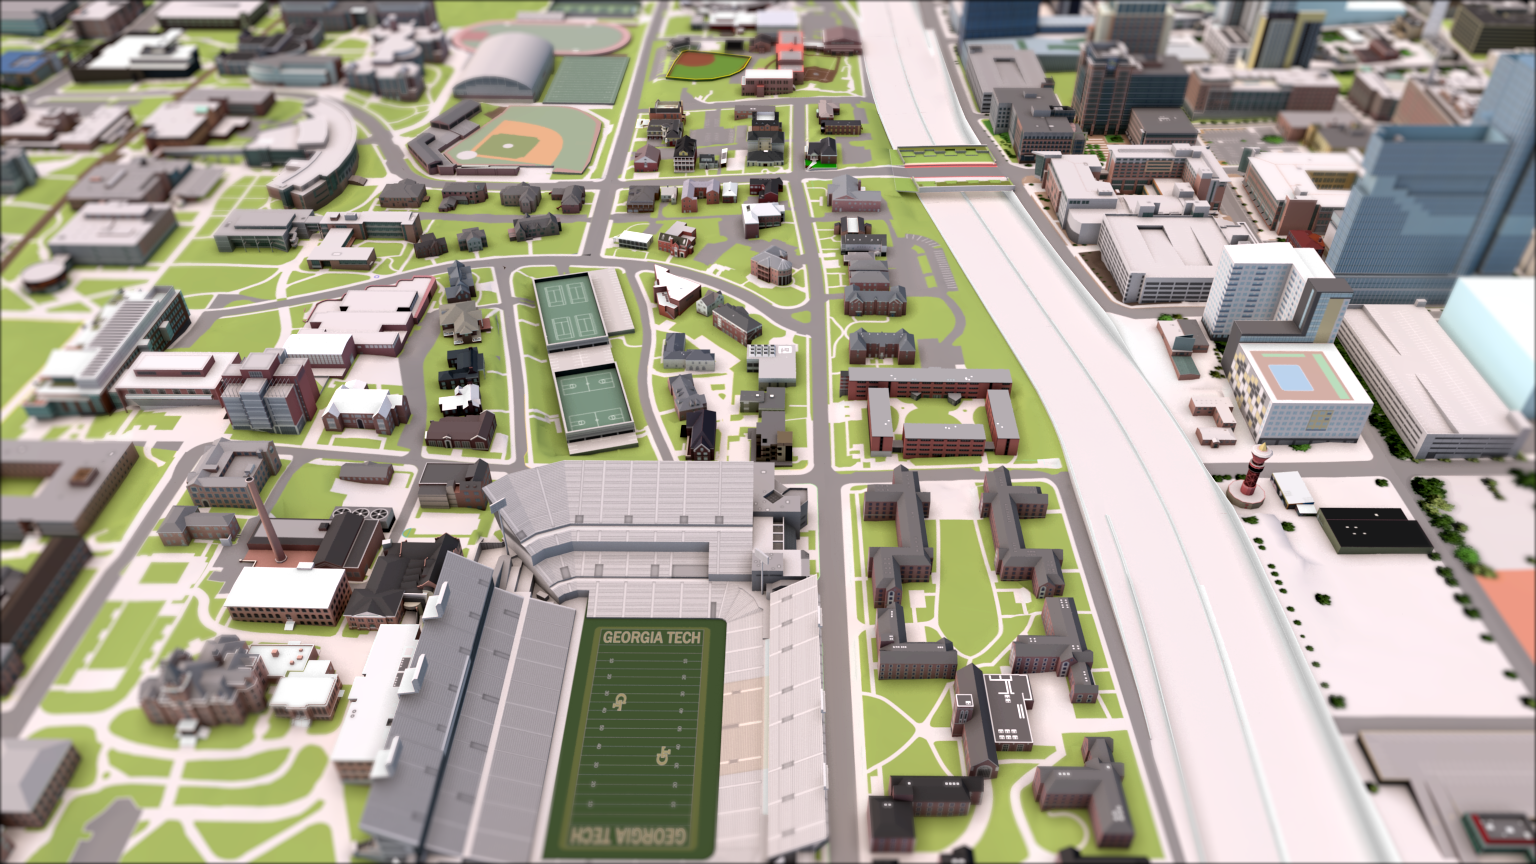 Rendered view of the GT campus with the stadium and highway